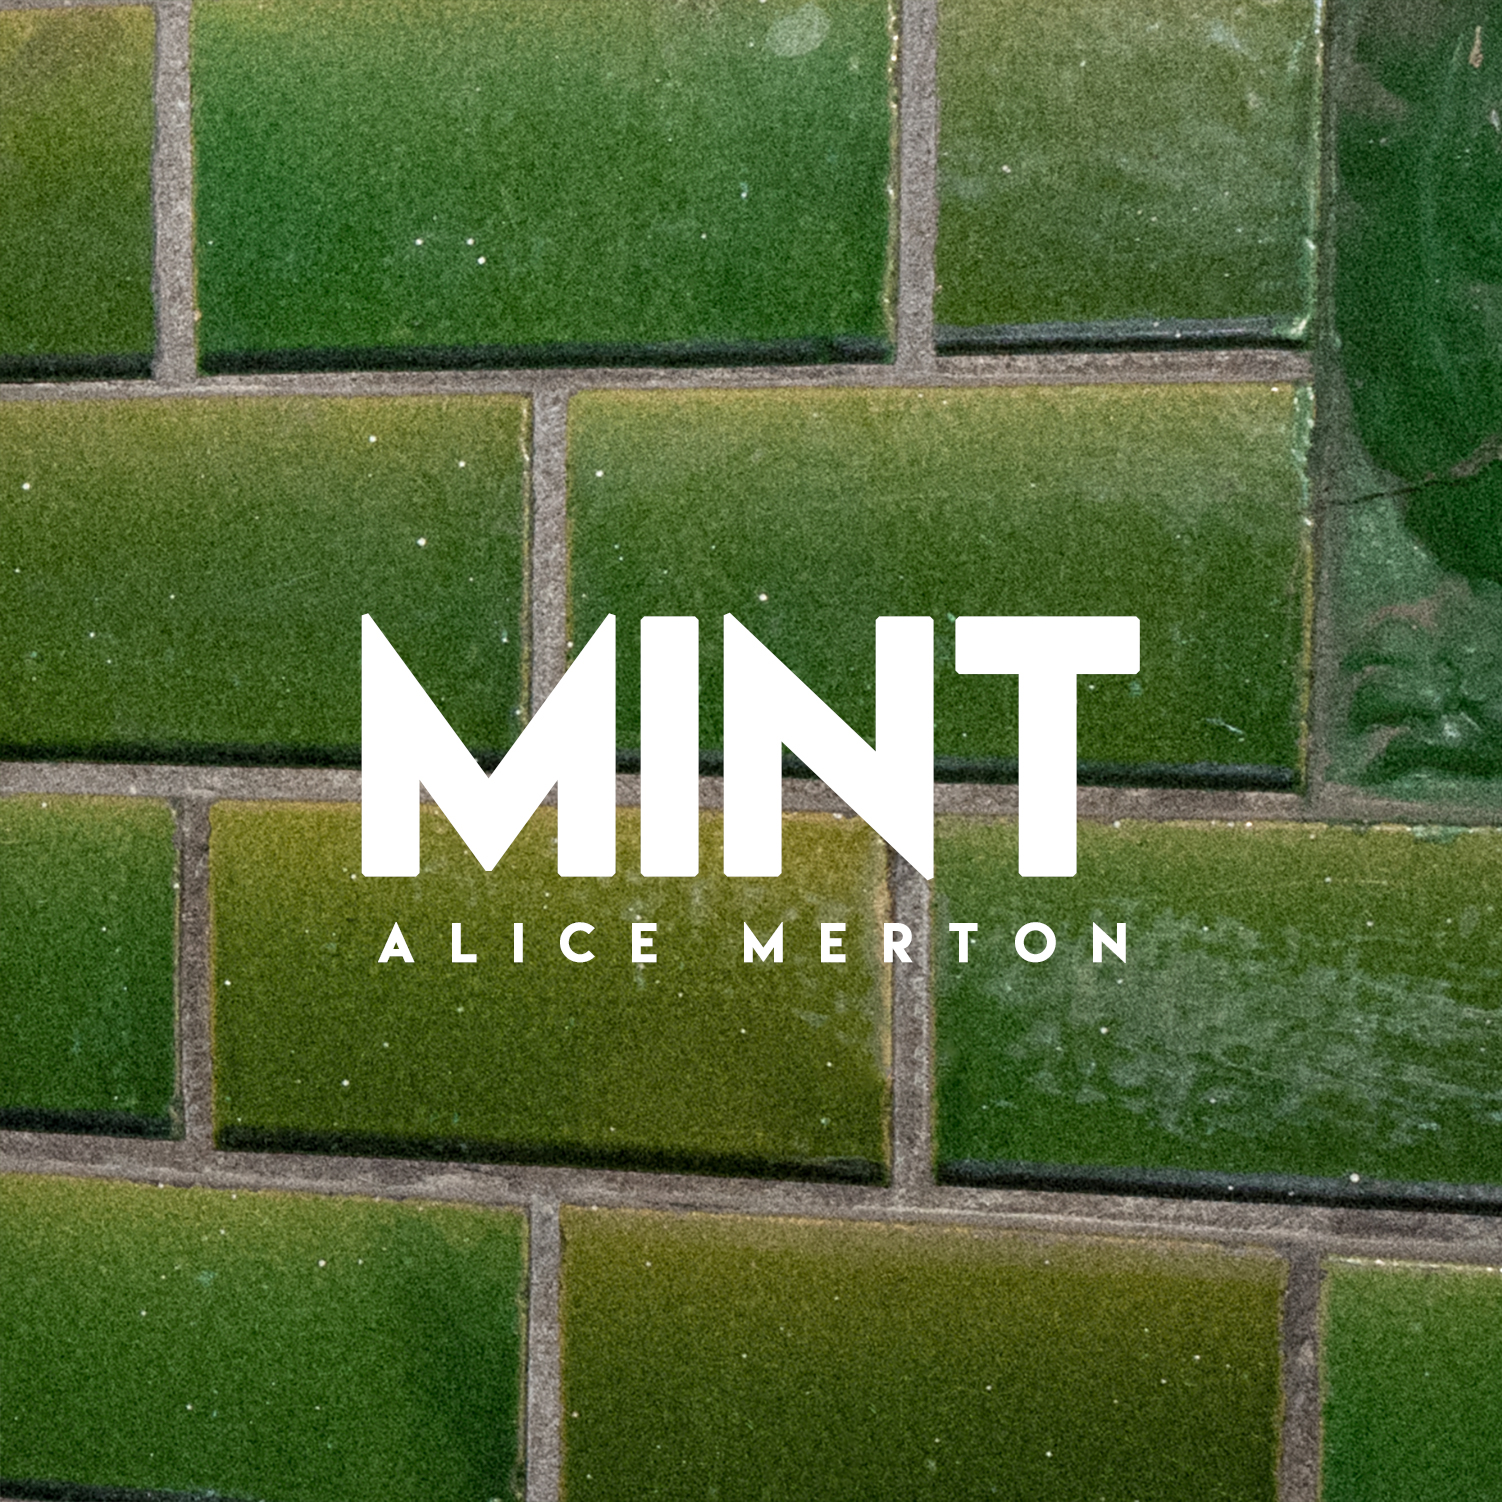 AliceMerton_MINT_CoverDummy.jpg